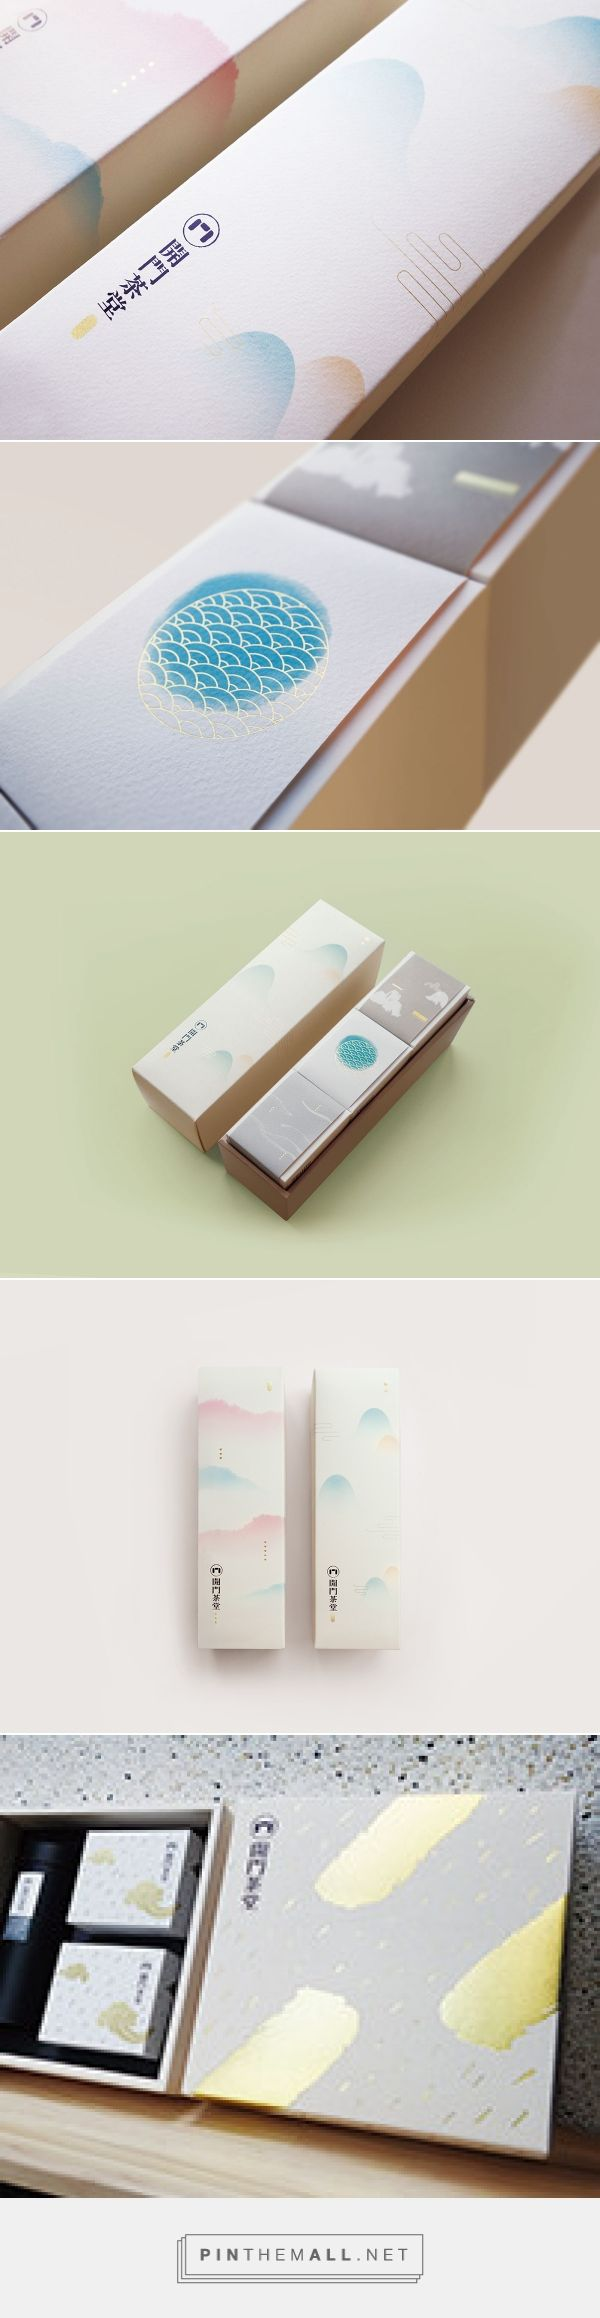 KaiMon | Taiwan Tea House Spring Gift Box|開門茶堂春茶禮盒 on Behance... - a grouped images picture - Pin Them All